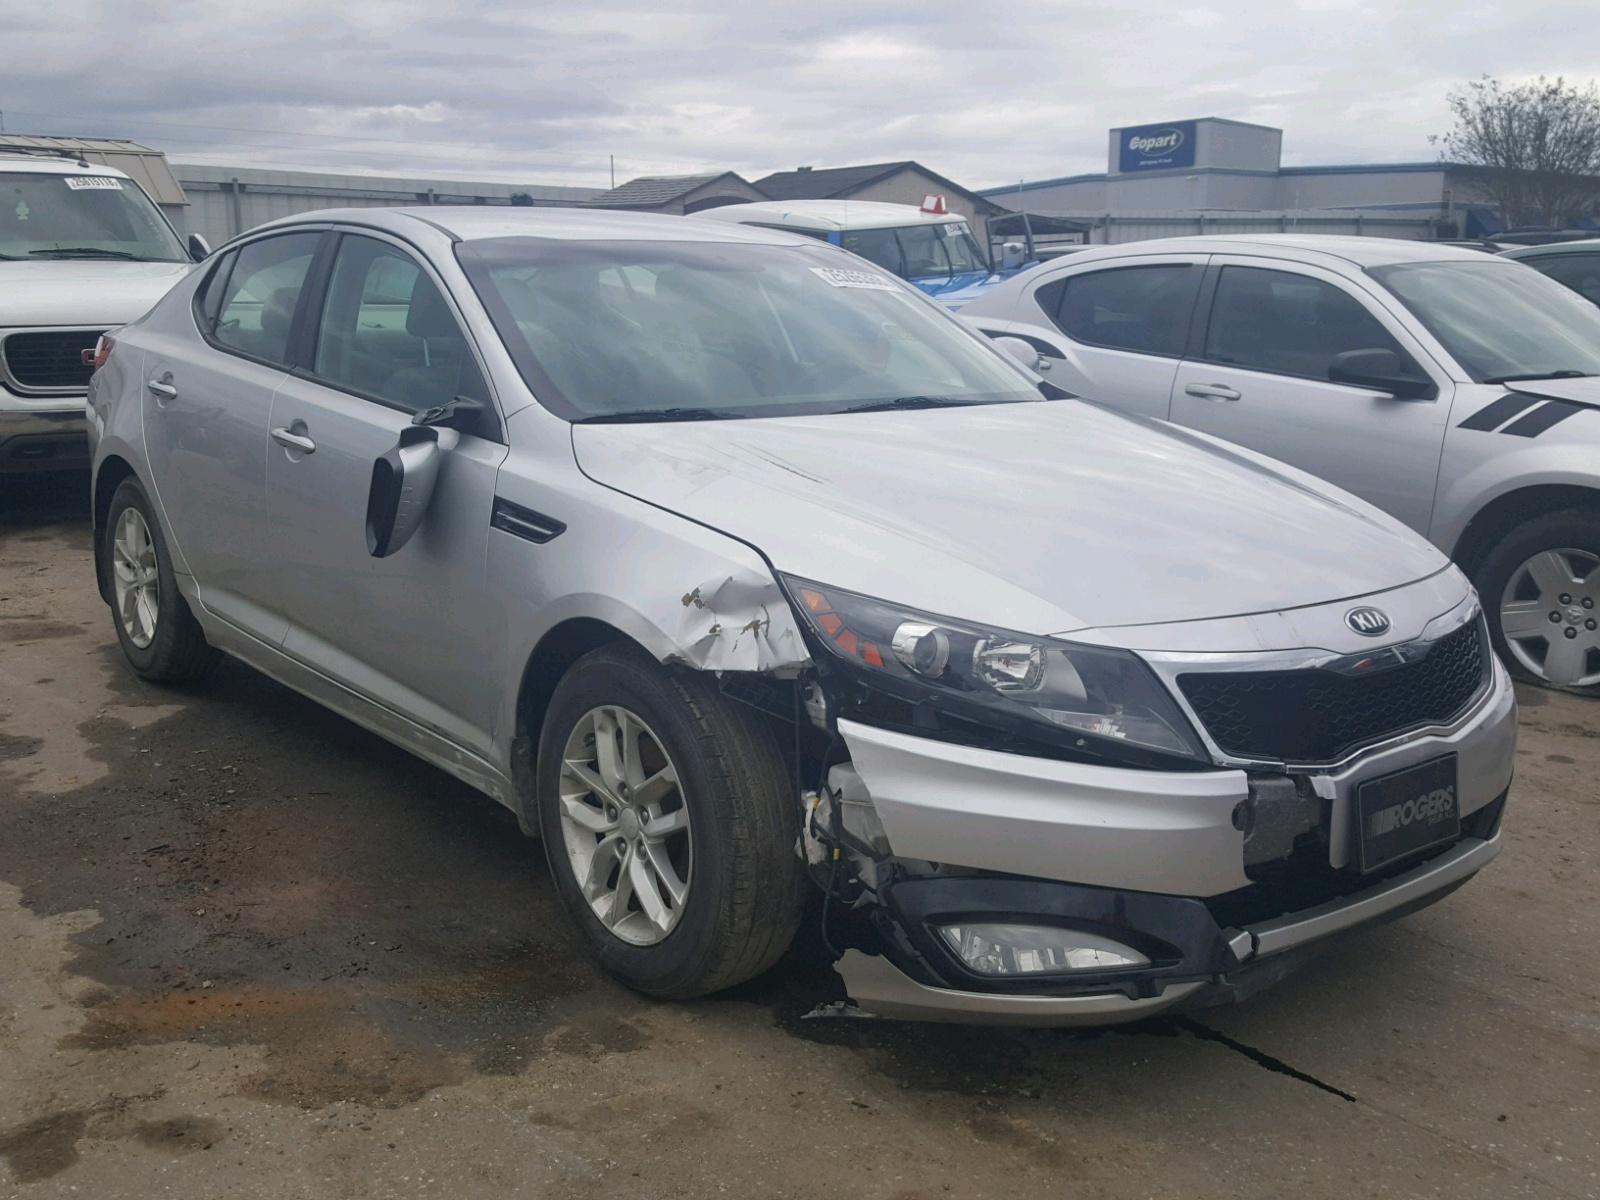 kia sale for s inventory cars lx swanson optima at trucks in and warsaw details